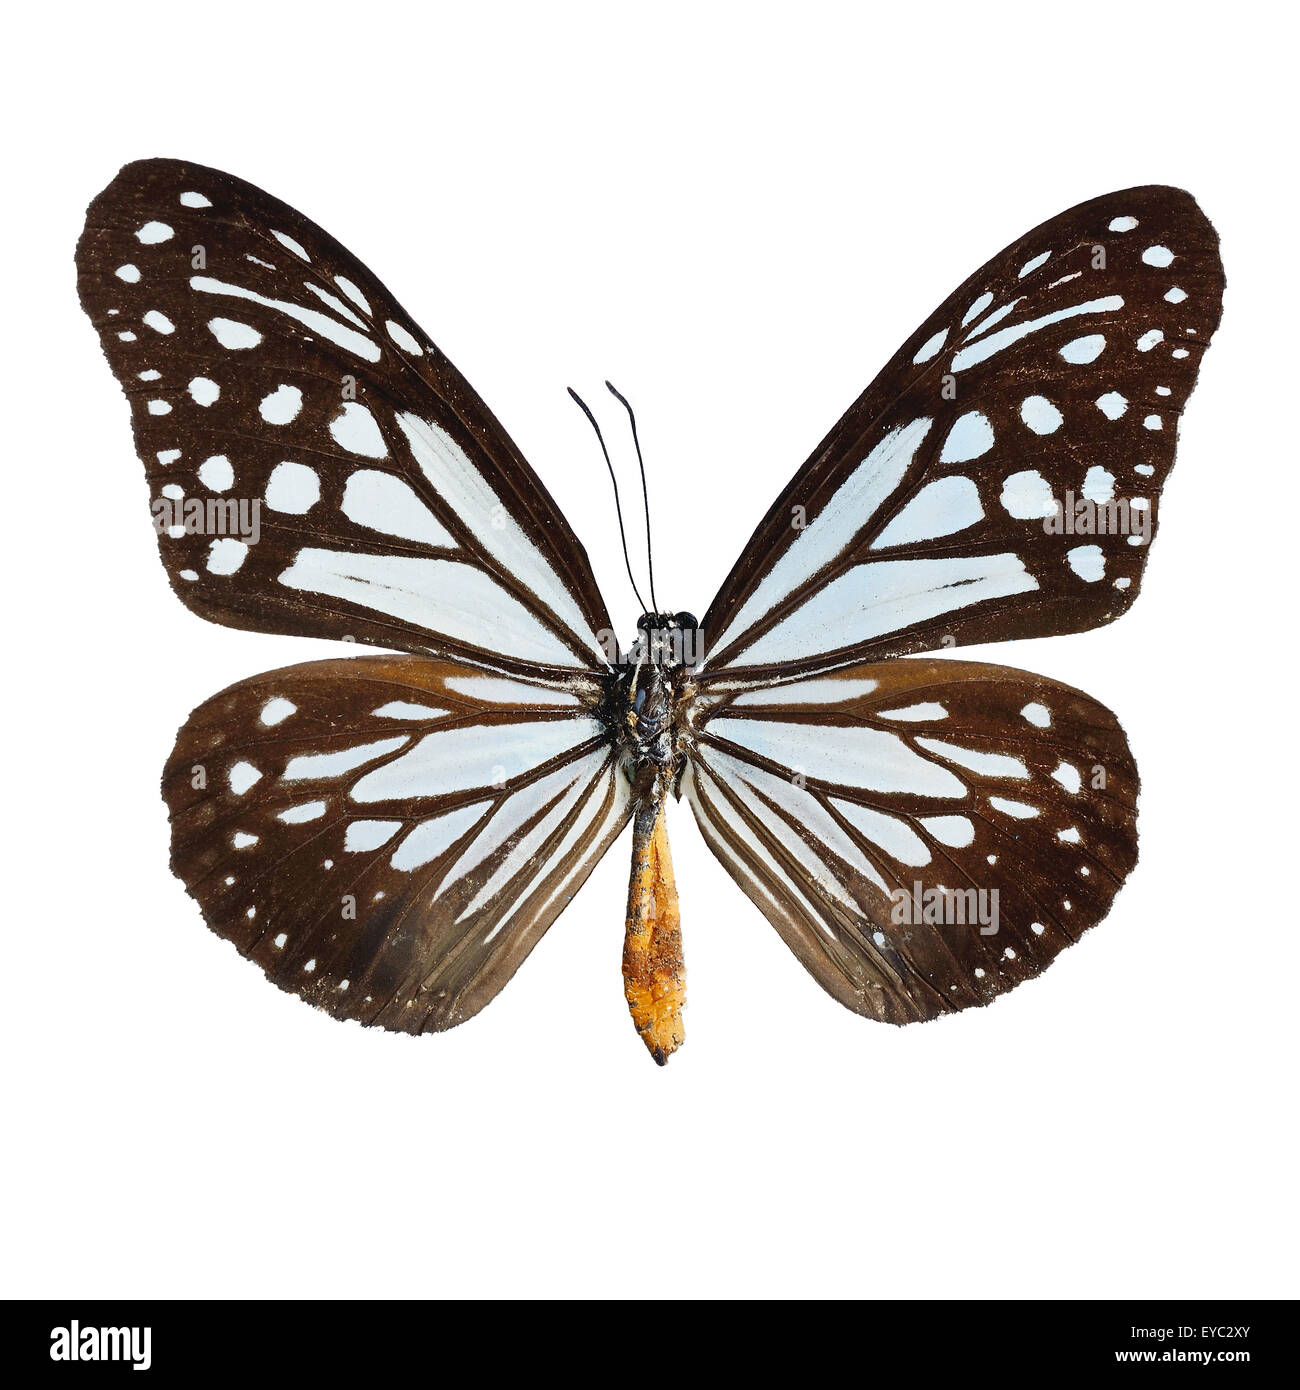 Blue and brown butterfly,Tawny Mime butterfly, isolate on white background - Stock Image